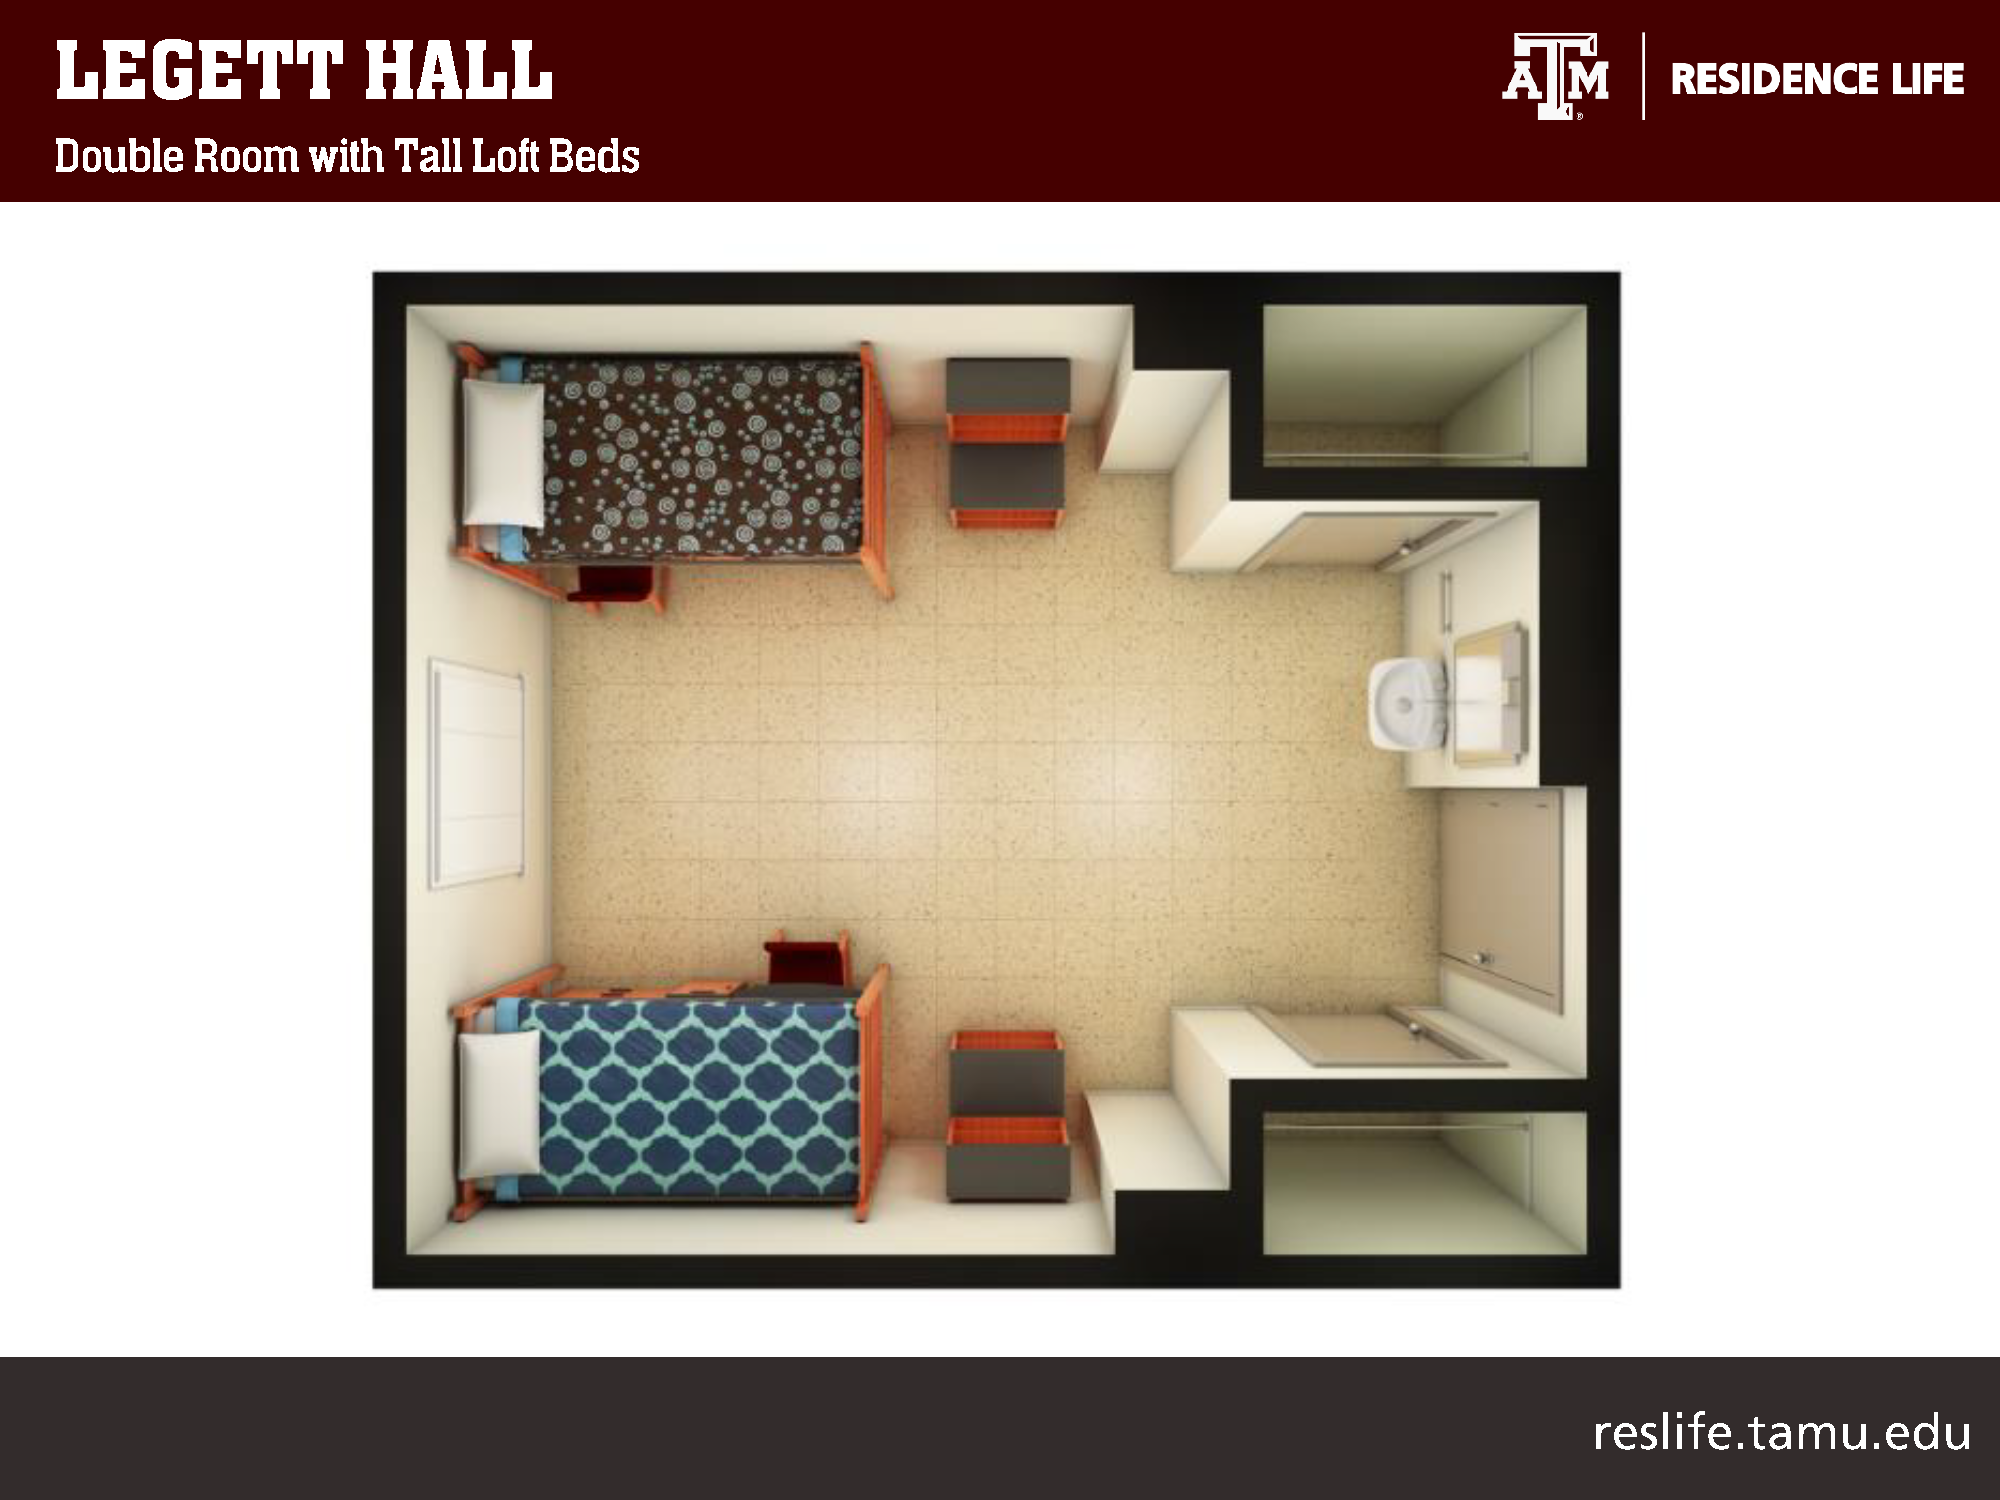 Bird's Eye 3-D View of Room: two lofted beds pictured with study desk and two storage cabinets underneath each bed. 4 other storage shelves pictured in room. 1 sink vanity and two closets.